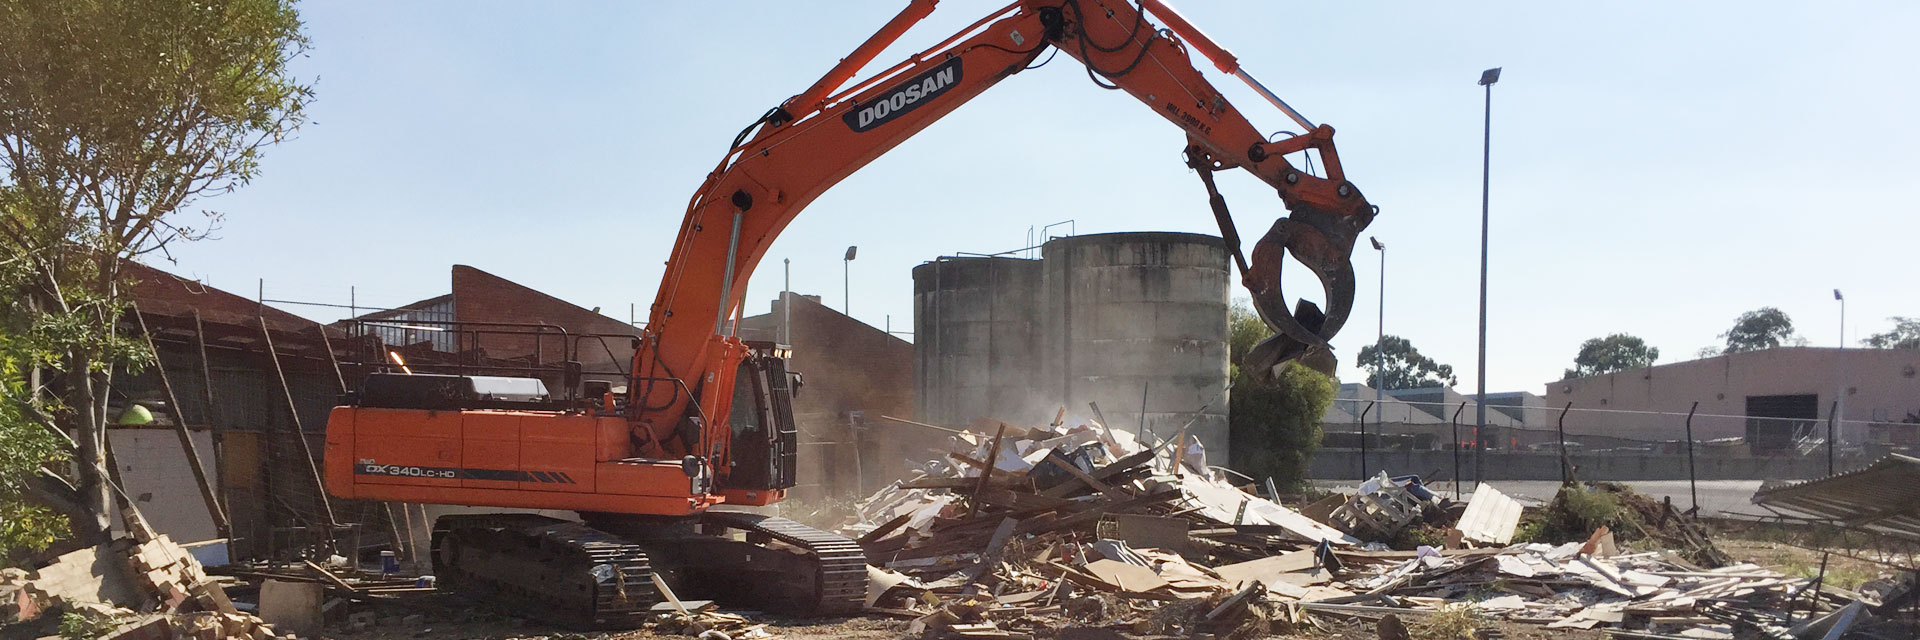 asbestos demolition and site clearing